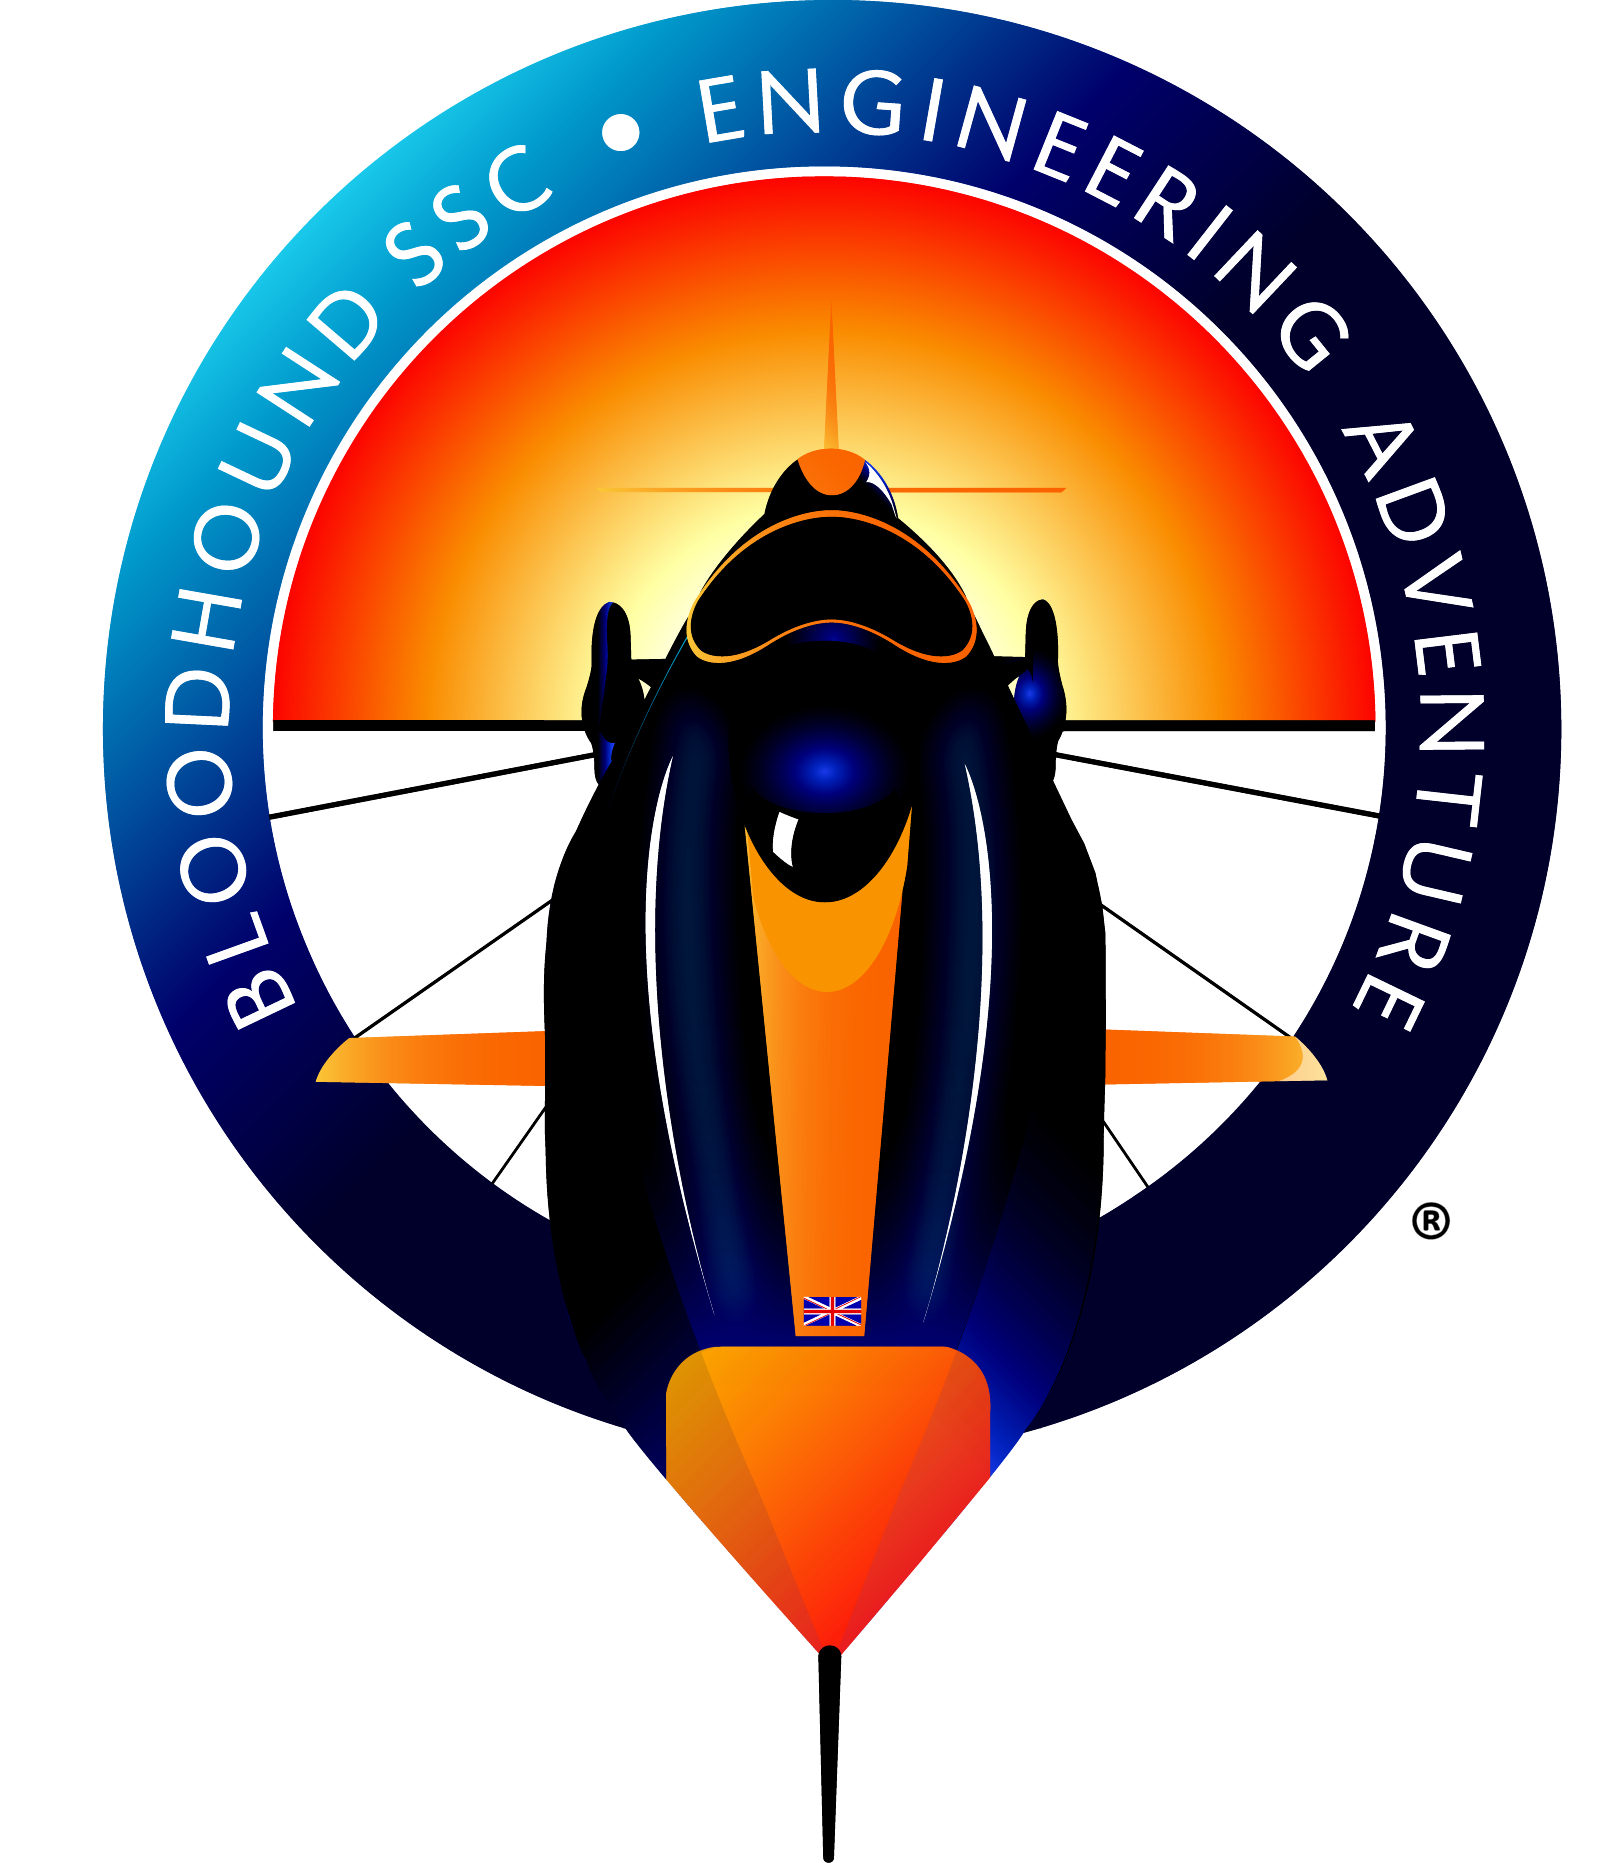 Chief Engineer, Bloodhound SSC